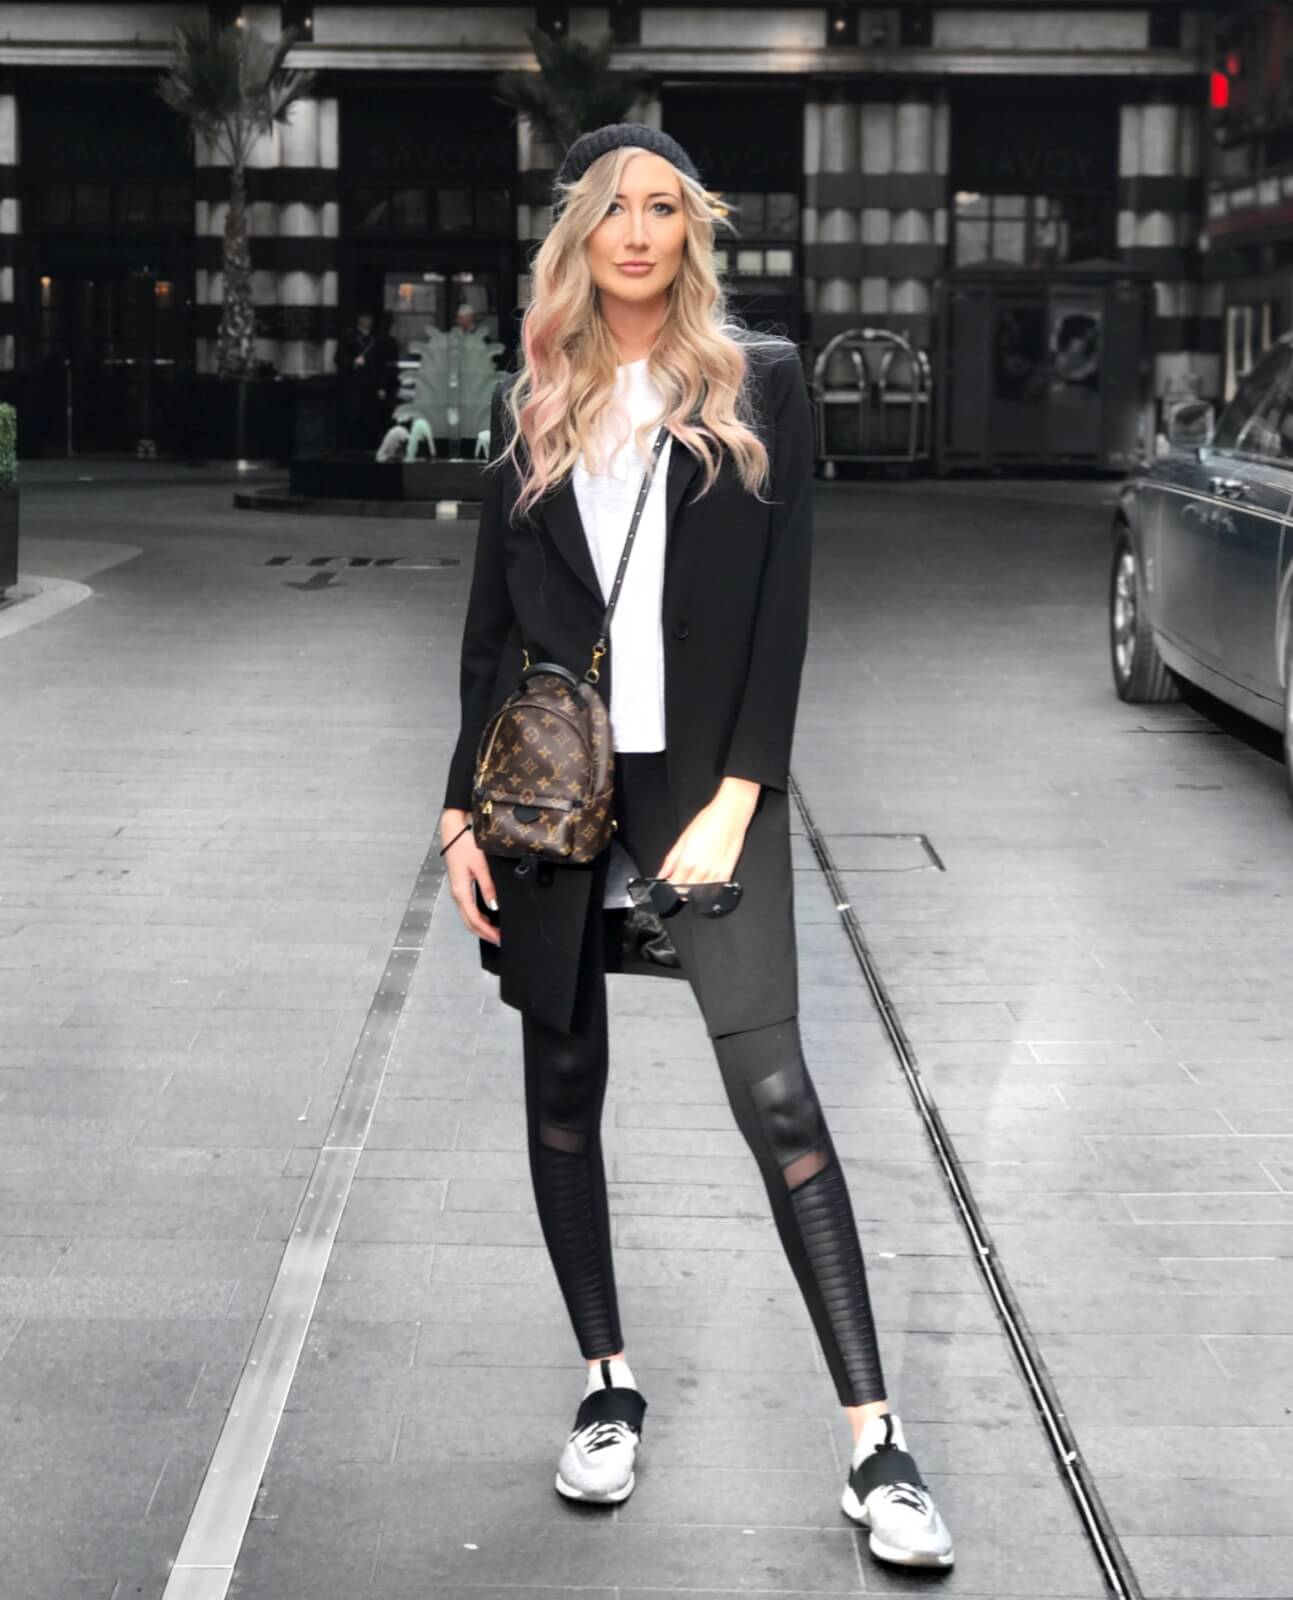 Carly Cristman - How To Dress for Business Casual - Easy Business Casual Look - dRA Grace Blazer Coat, Black Alo Leggings, Nike Air Zoom